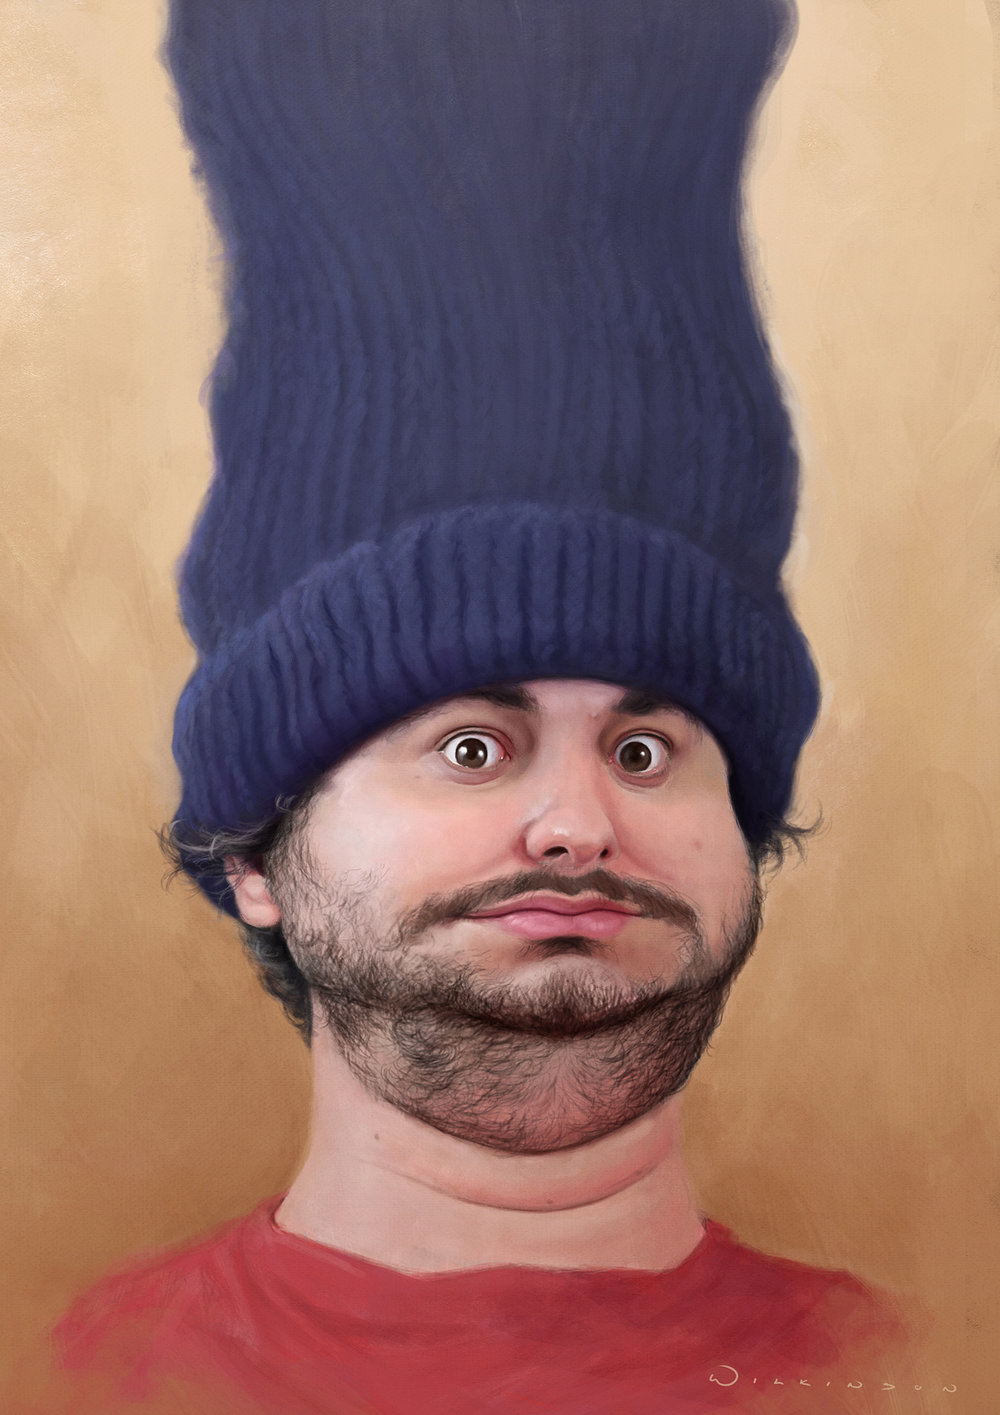 Caricature of h3h3 (Ethan Klein)